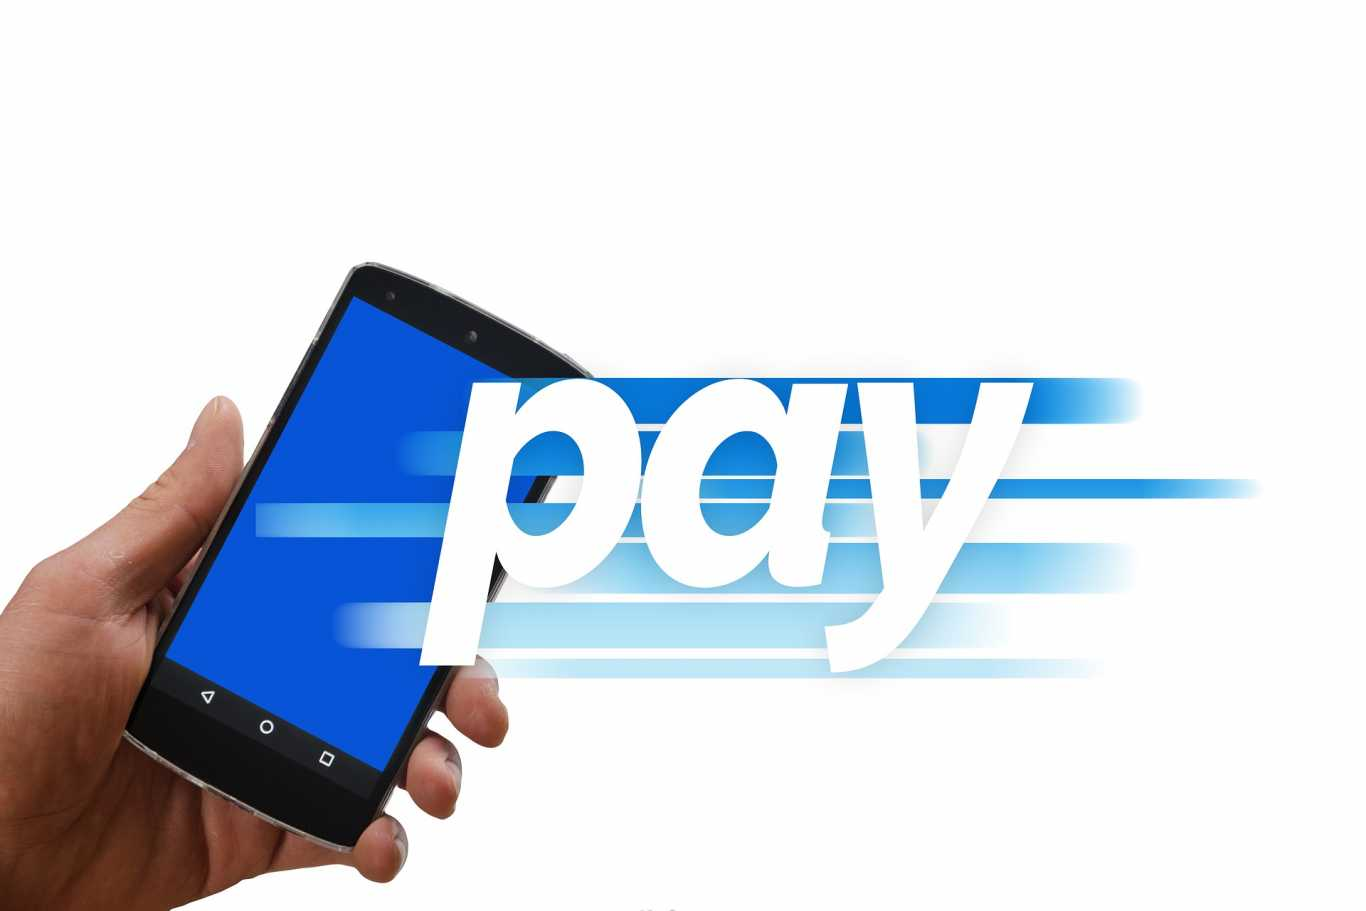 1xBet mobile payment